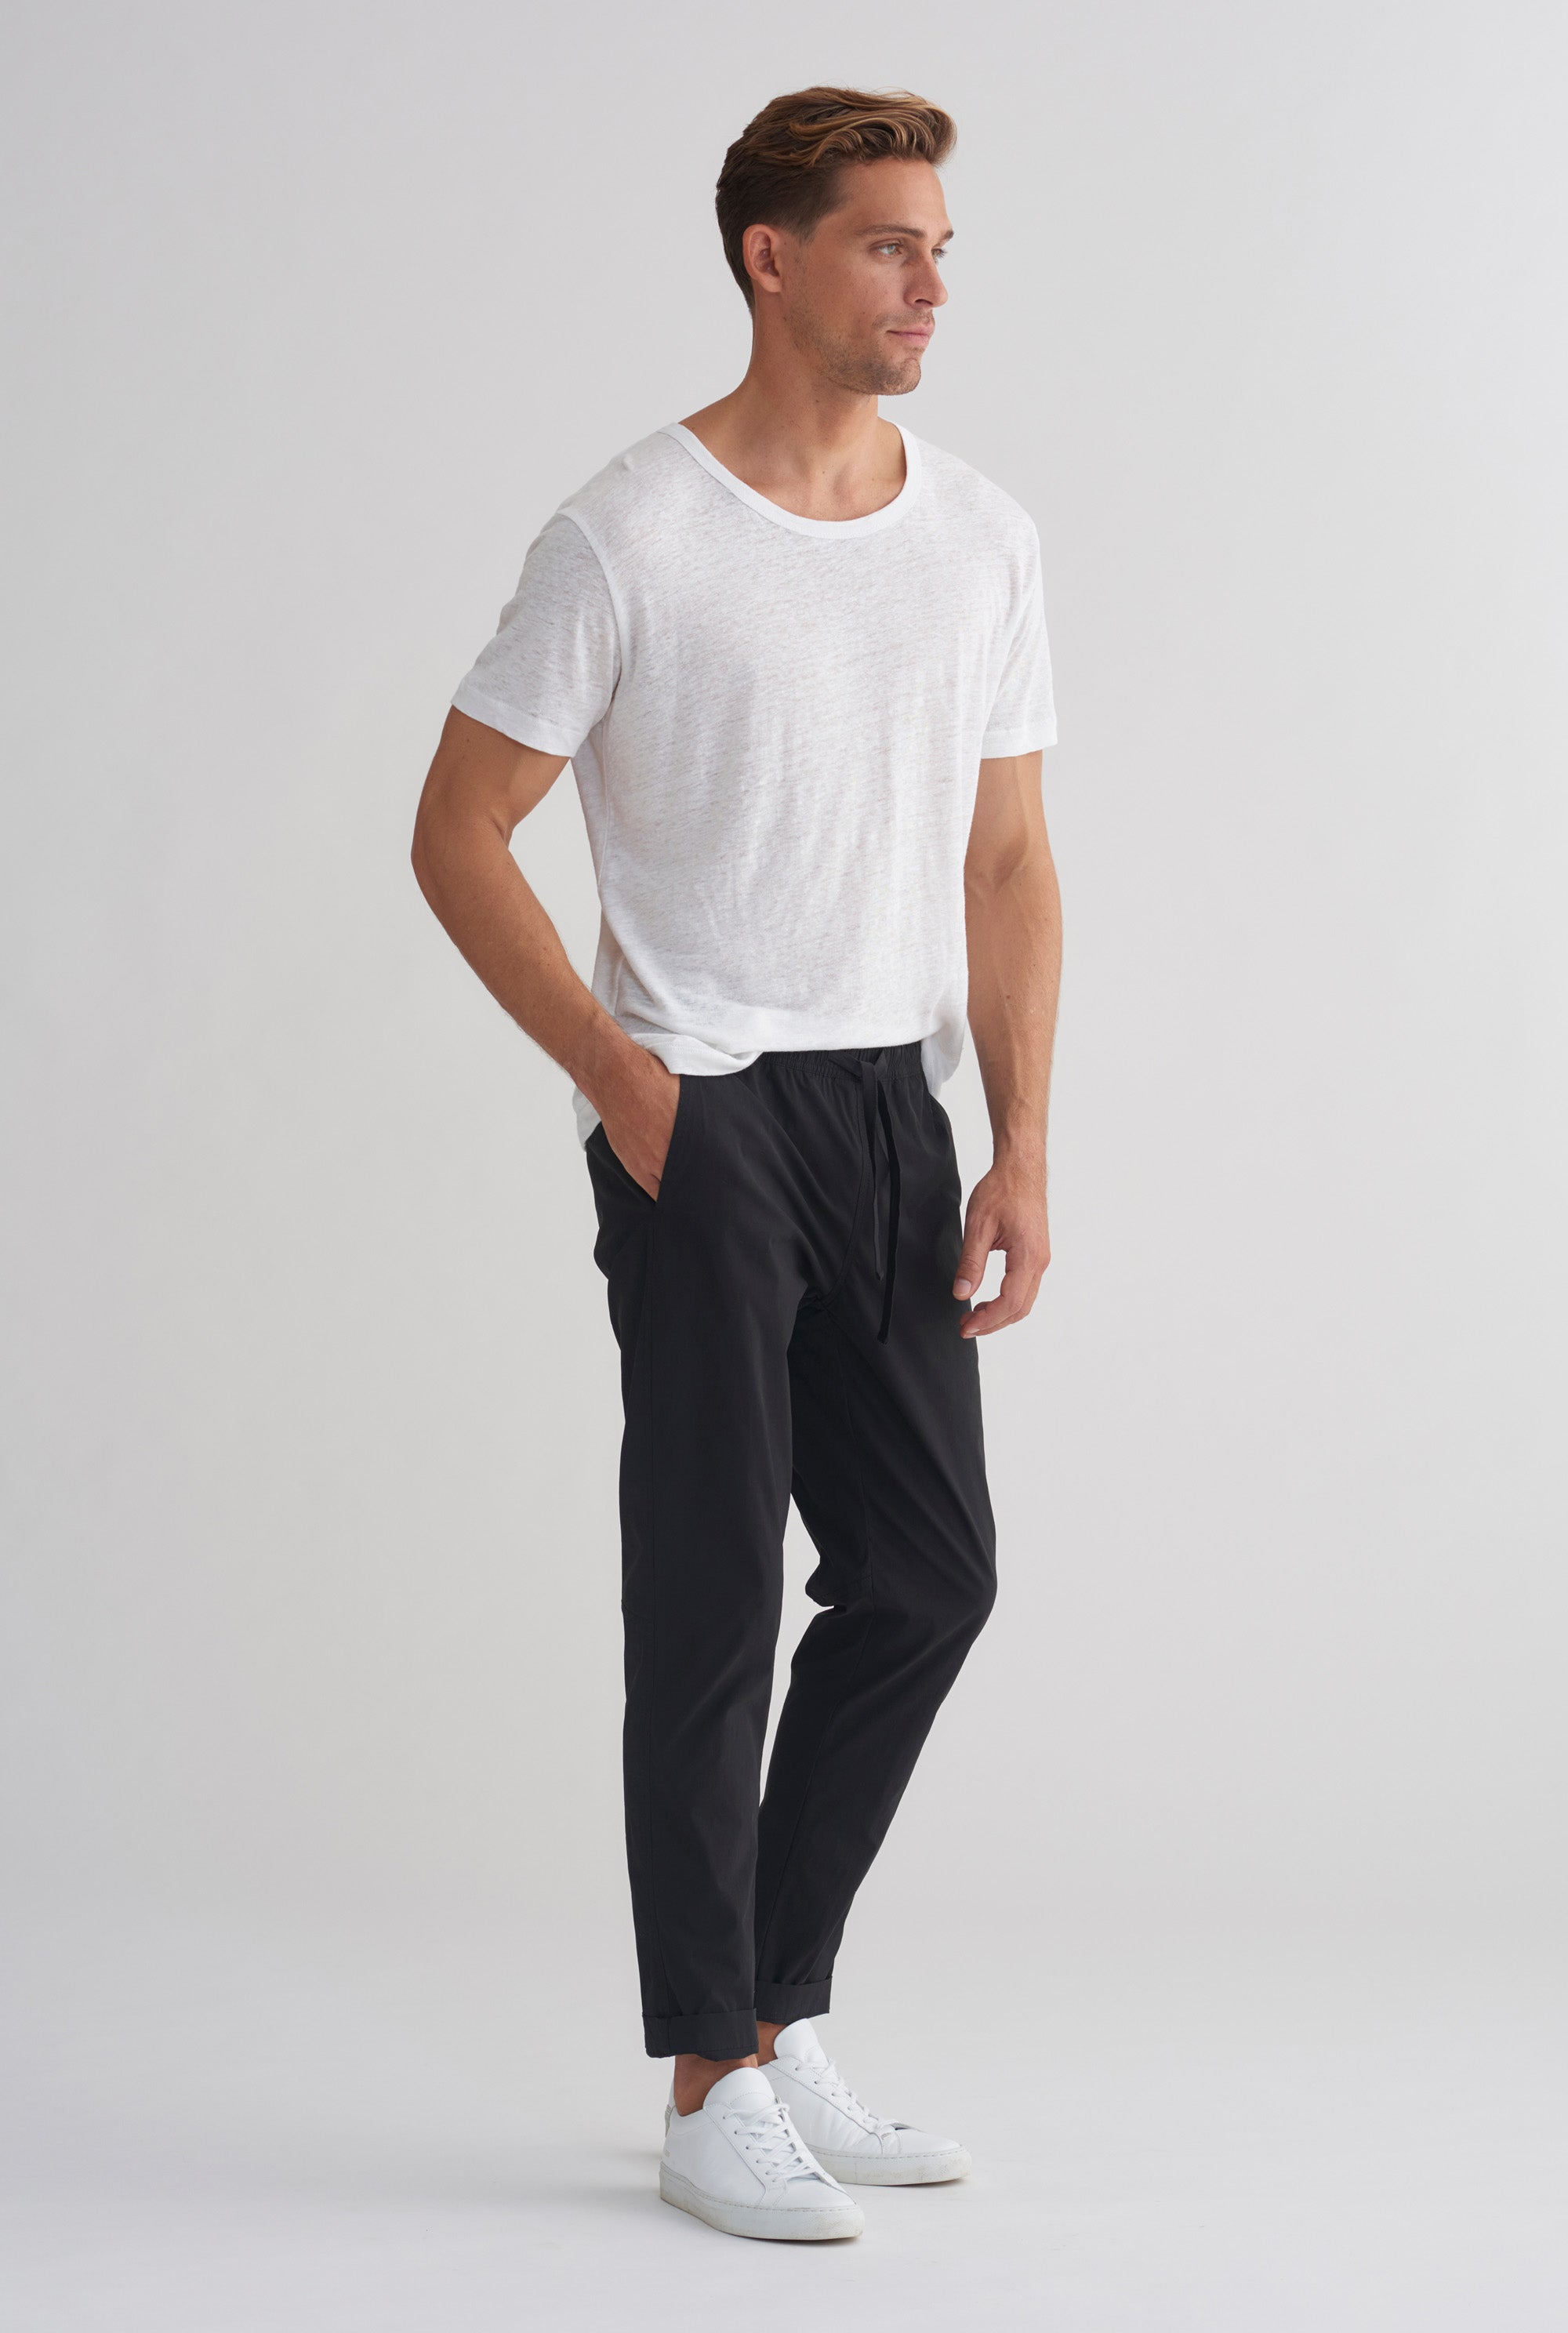 Cotton Stretch Pant - Black